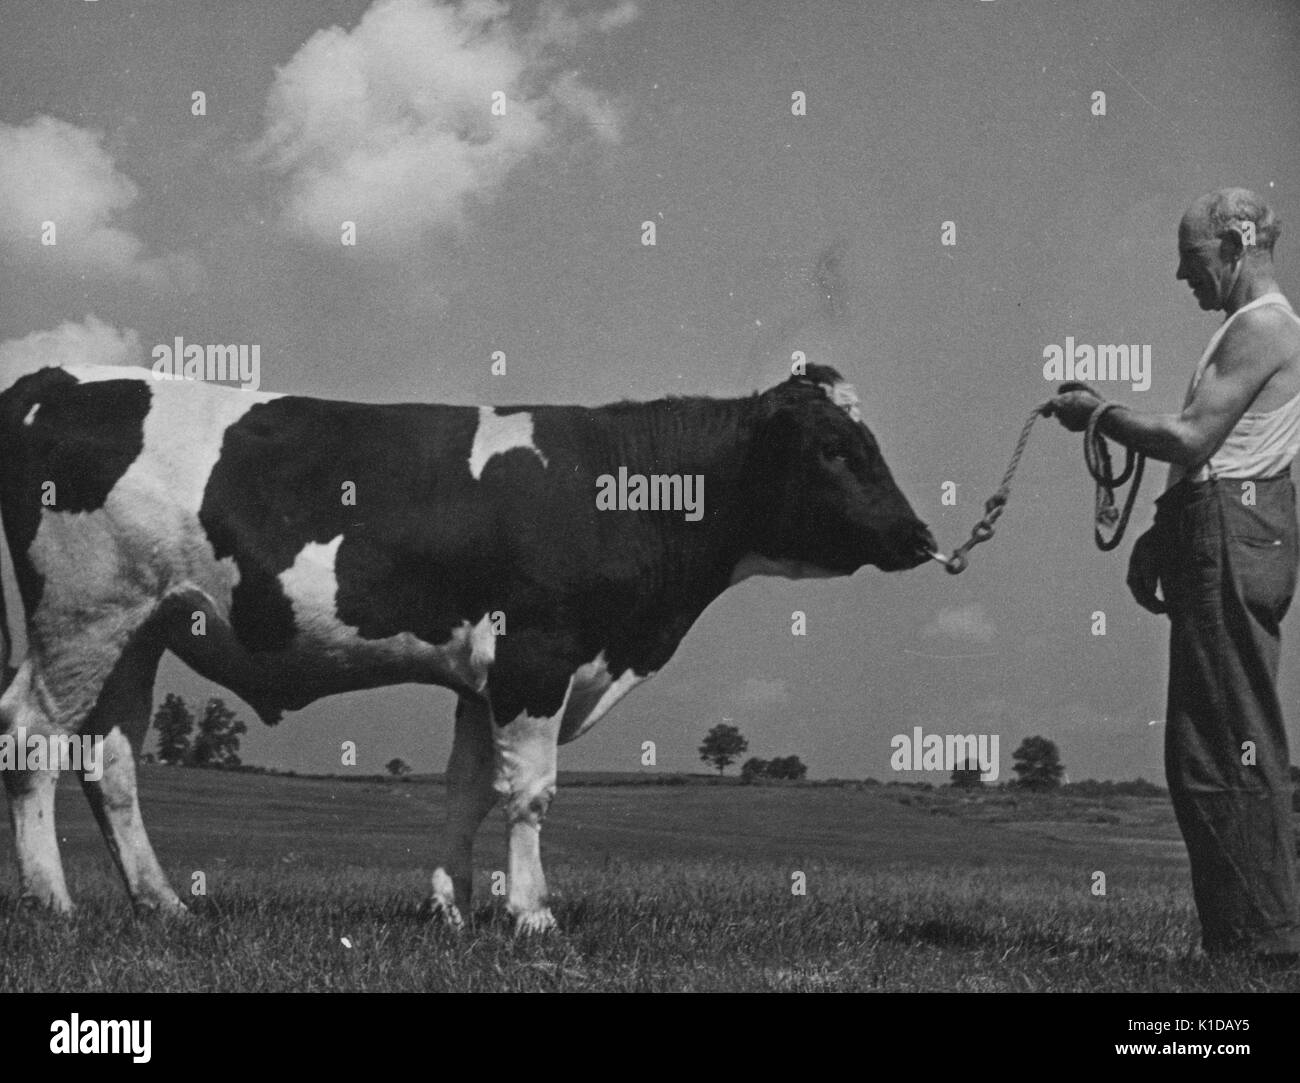 Mature man wearing undershirt and holding a rope attached to the nose of an inbred bull on a farm in Beltsville, Maryland, 1935. From the New York Public Library. - Stock Image